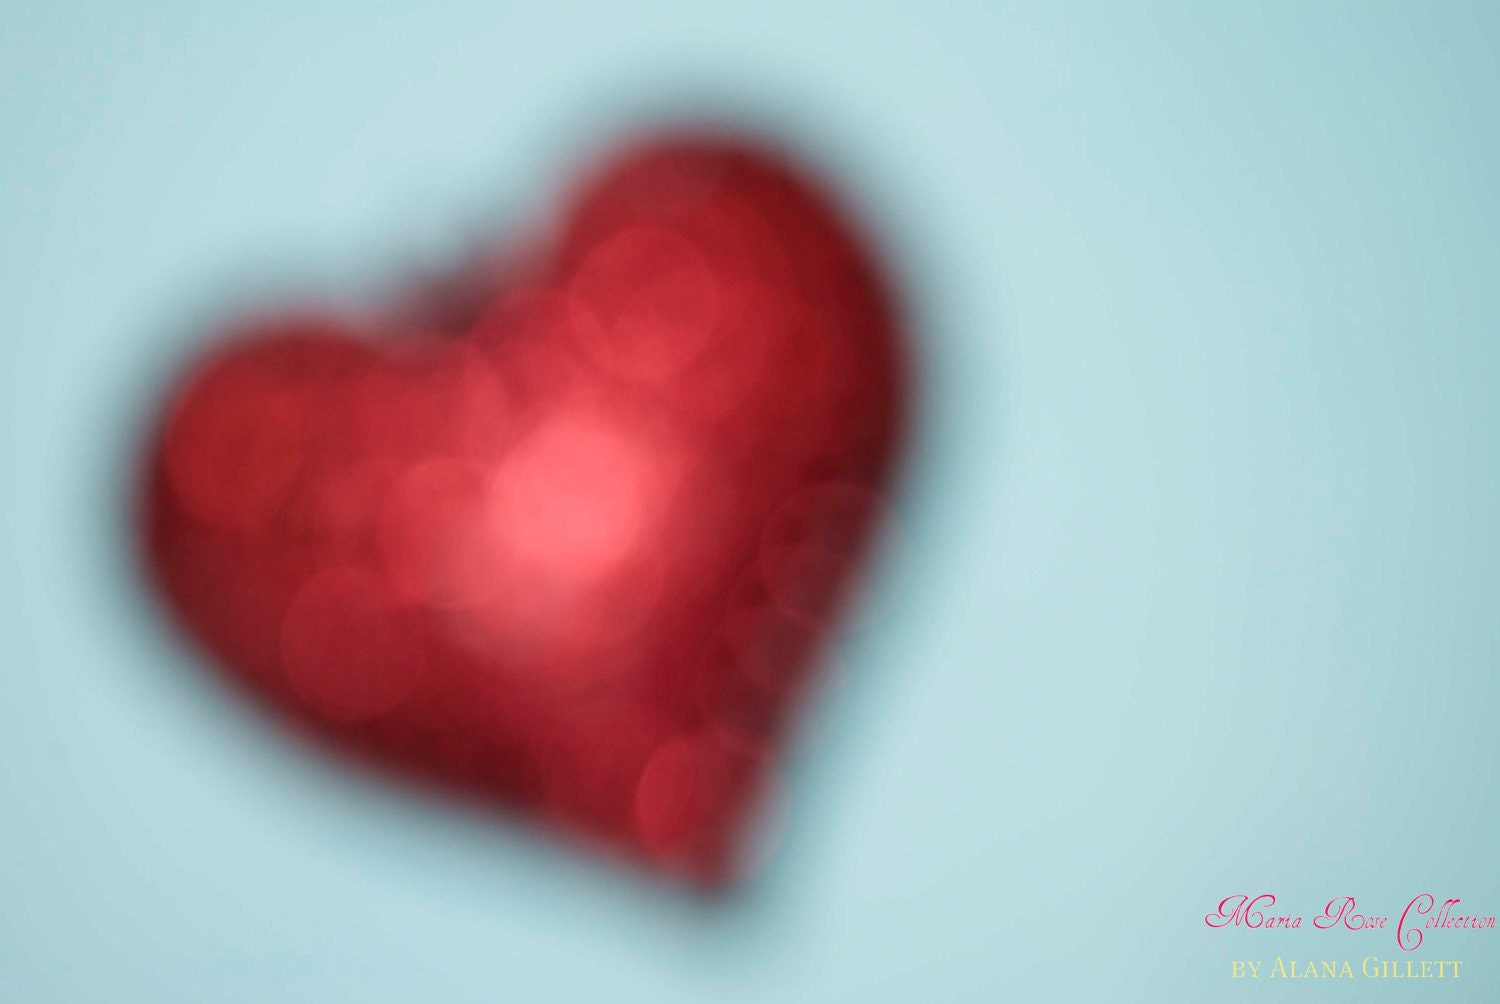 Soft Heart- Fine Art Photography print 5x7 by Alana Gillett- Ruby Red Aquamarine Teal Baby Blue Bokeh Dreamy Valentine's Day Love Wall Art - MariaRoseCollection